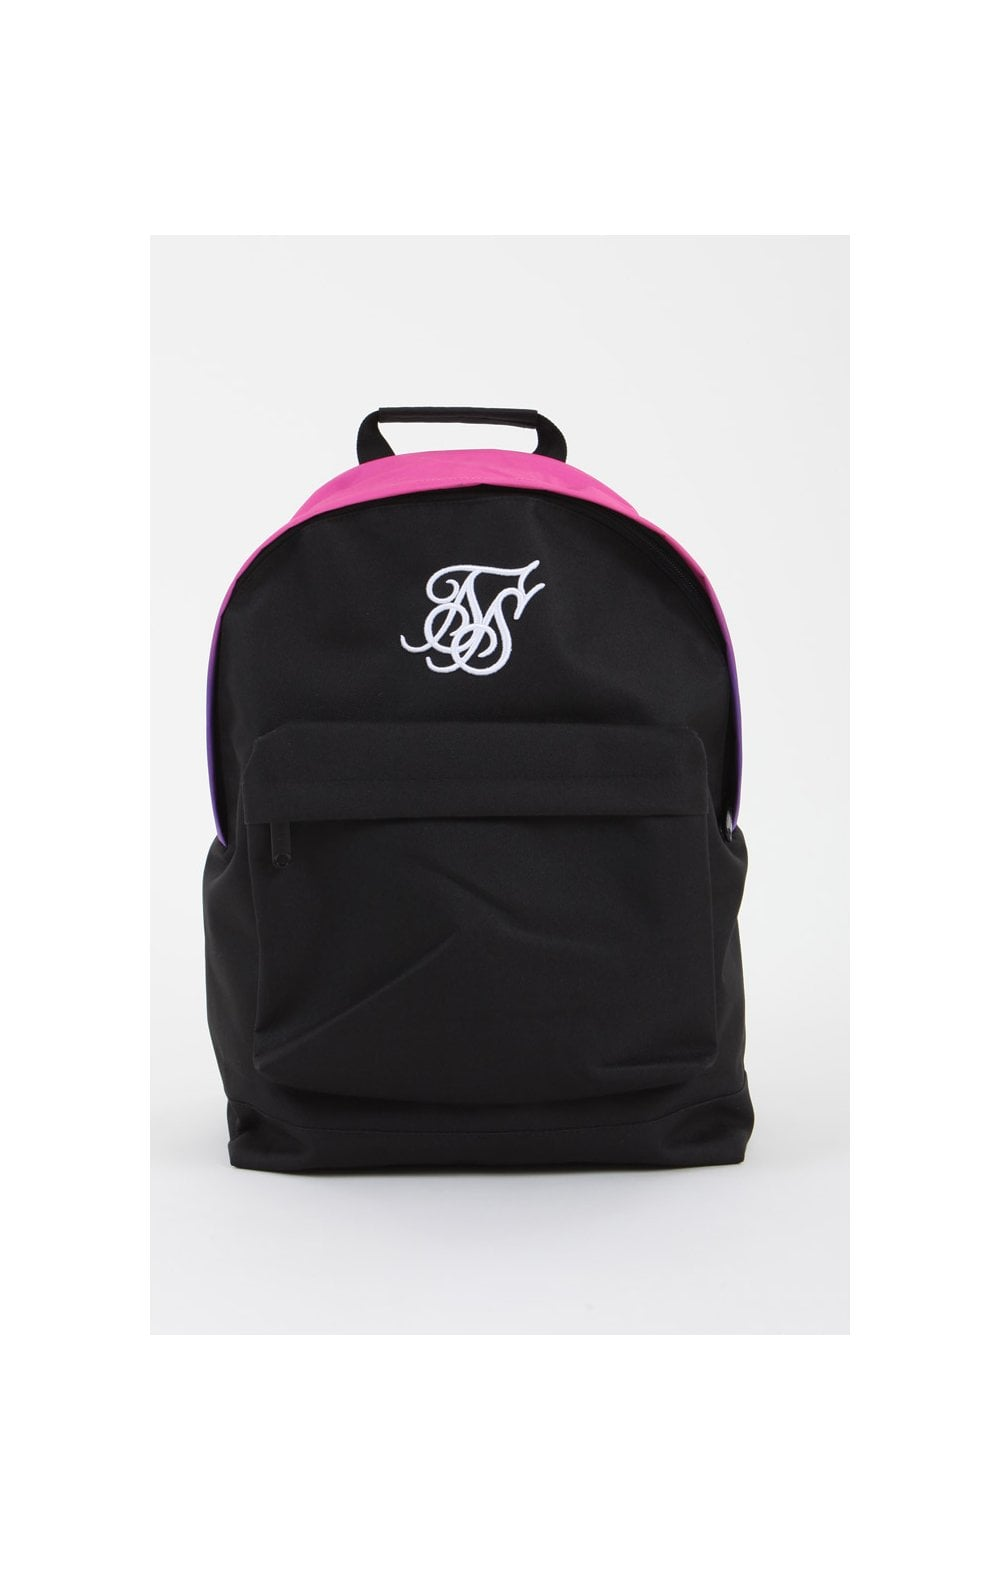 SikSilk Gradient Backpack - Tri Fade Pink